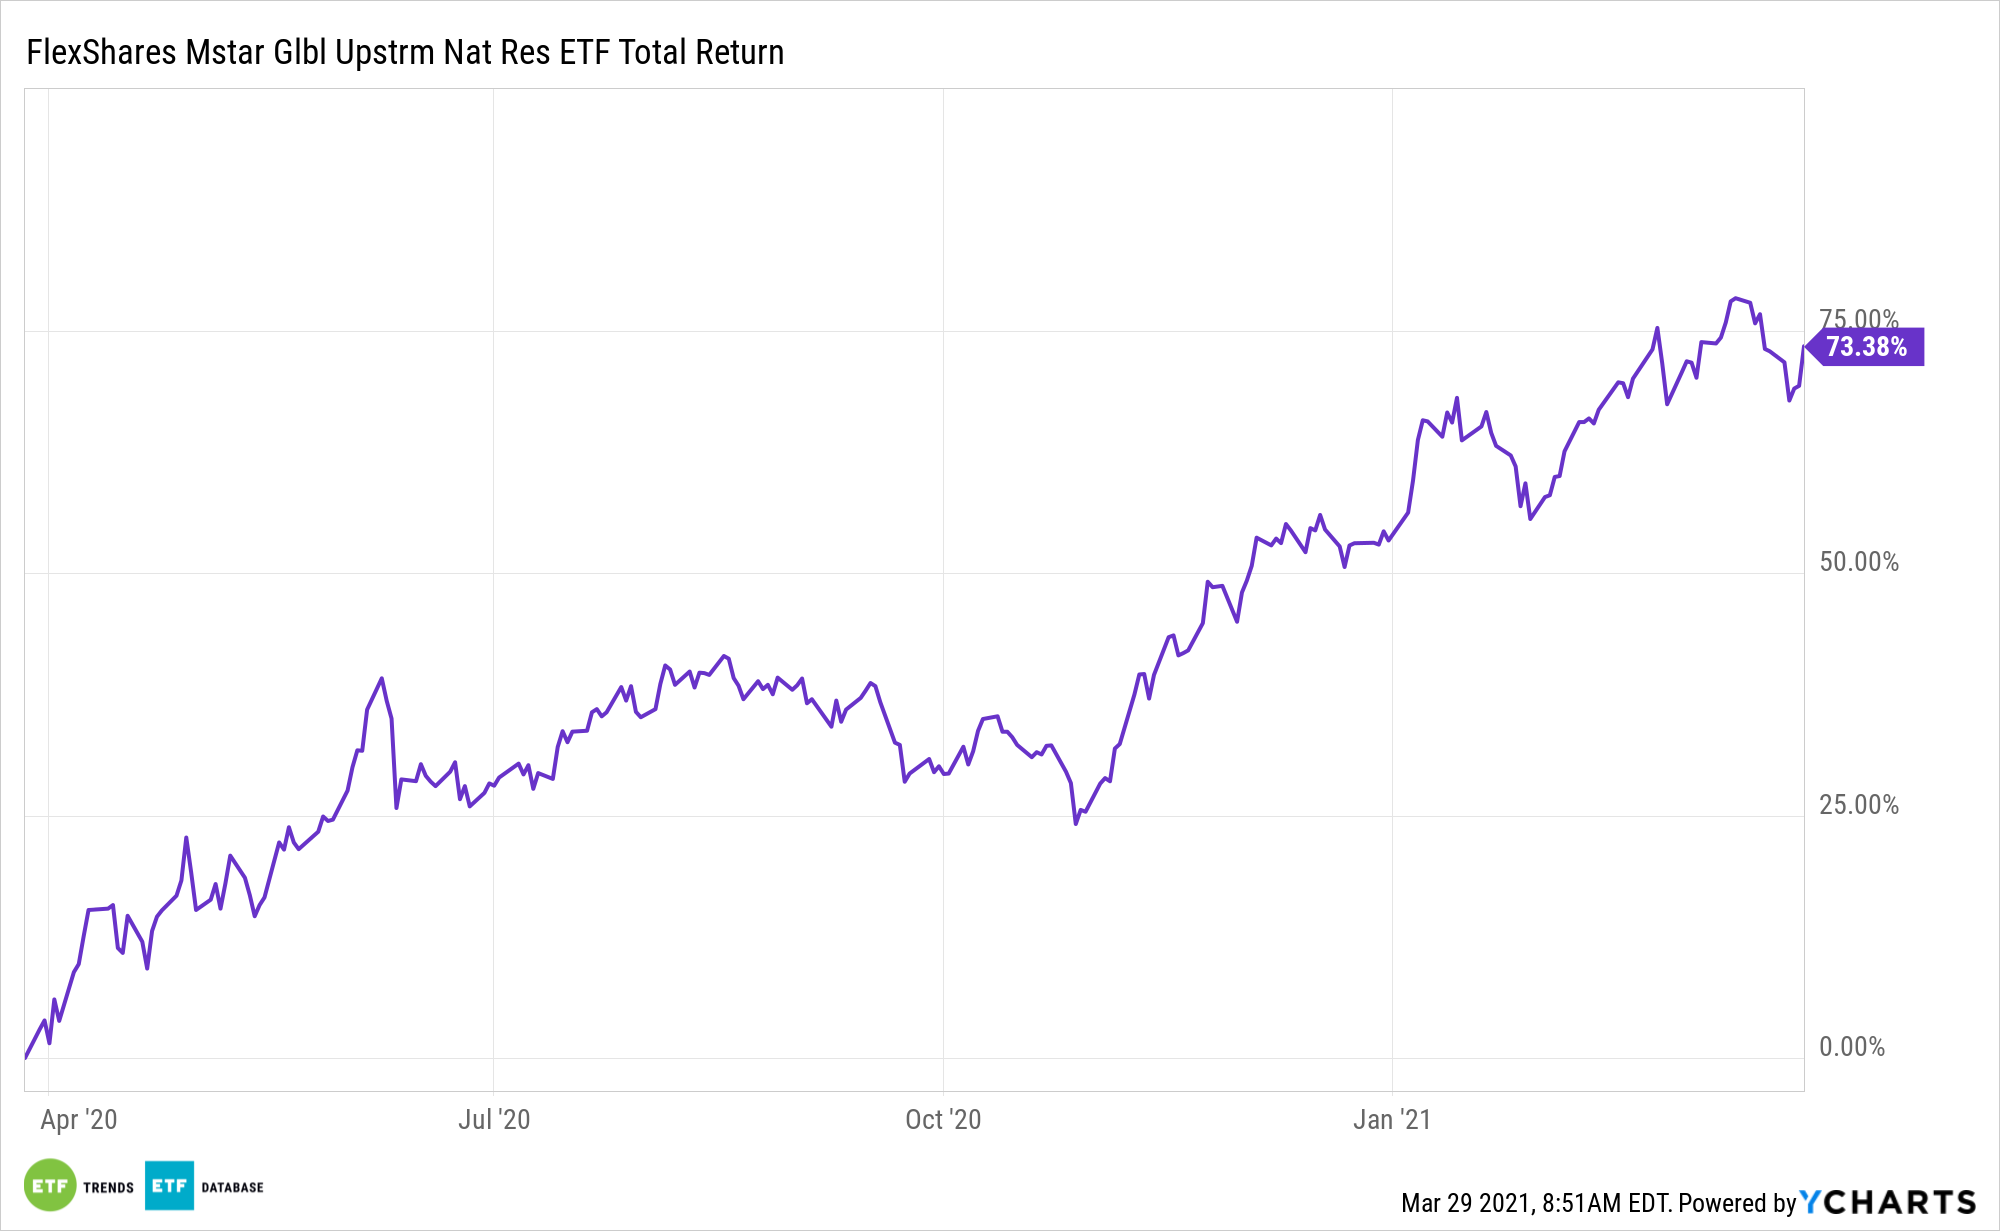 GUNR 1 Year Total Return